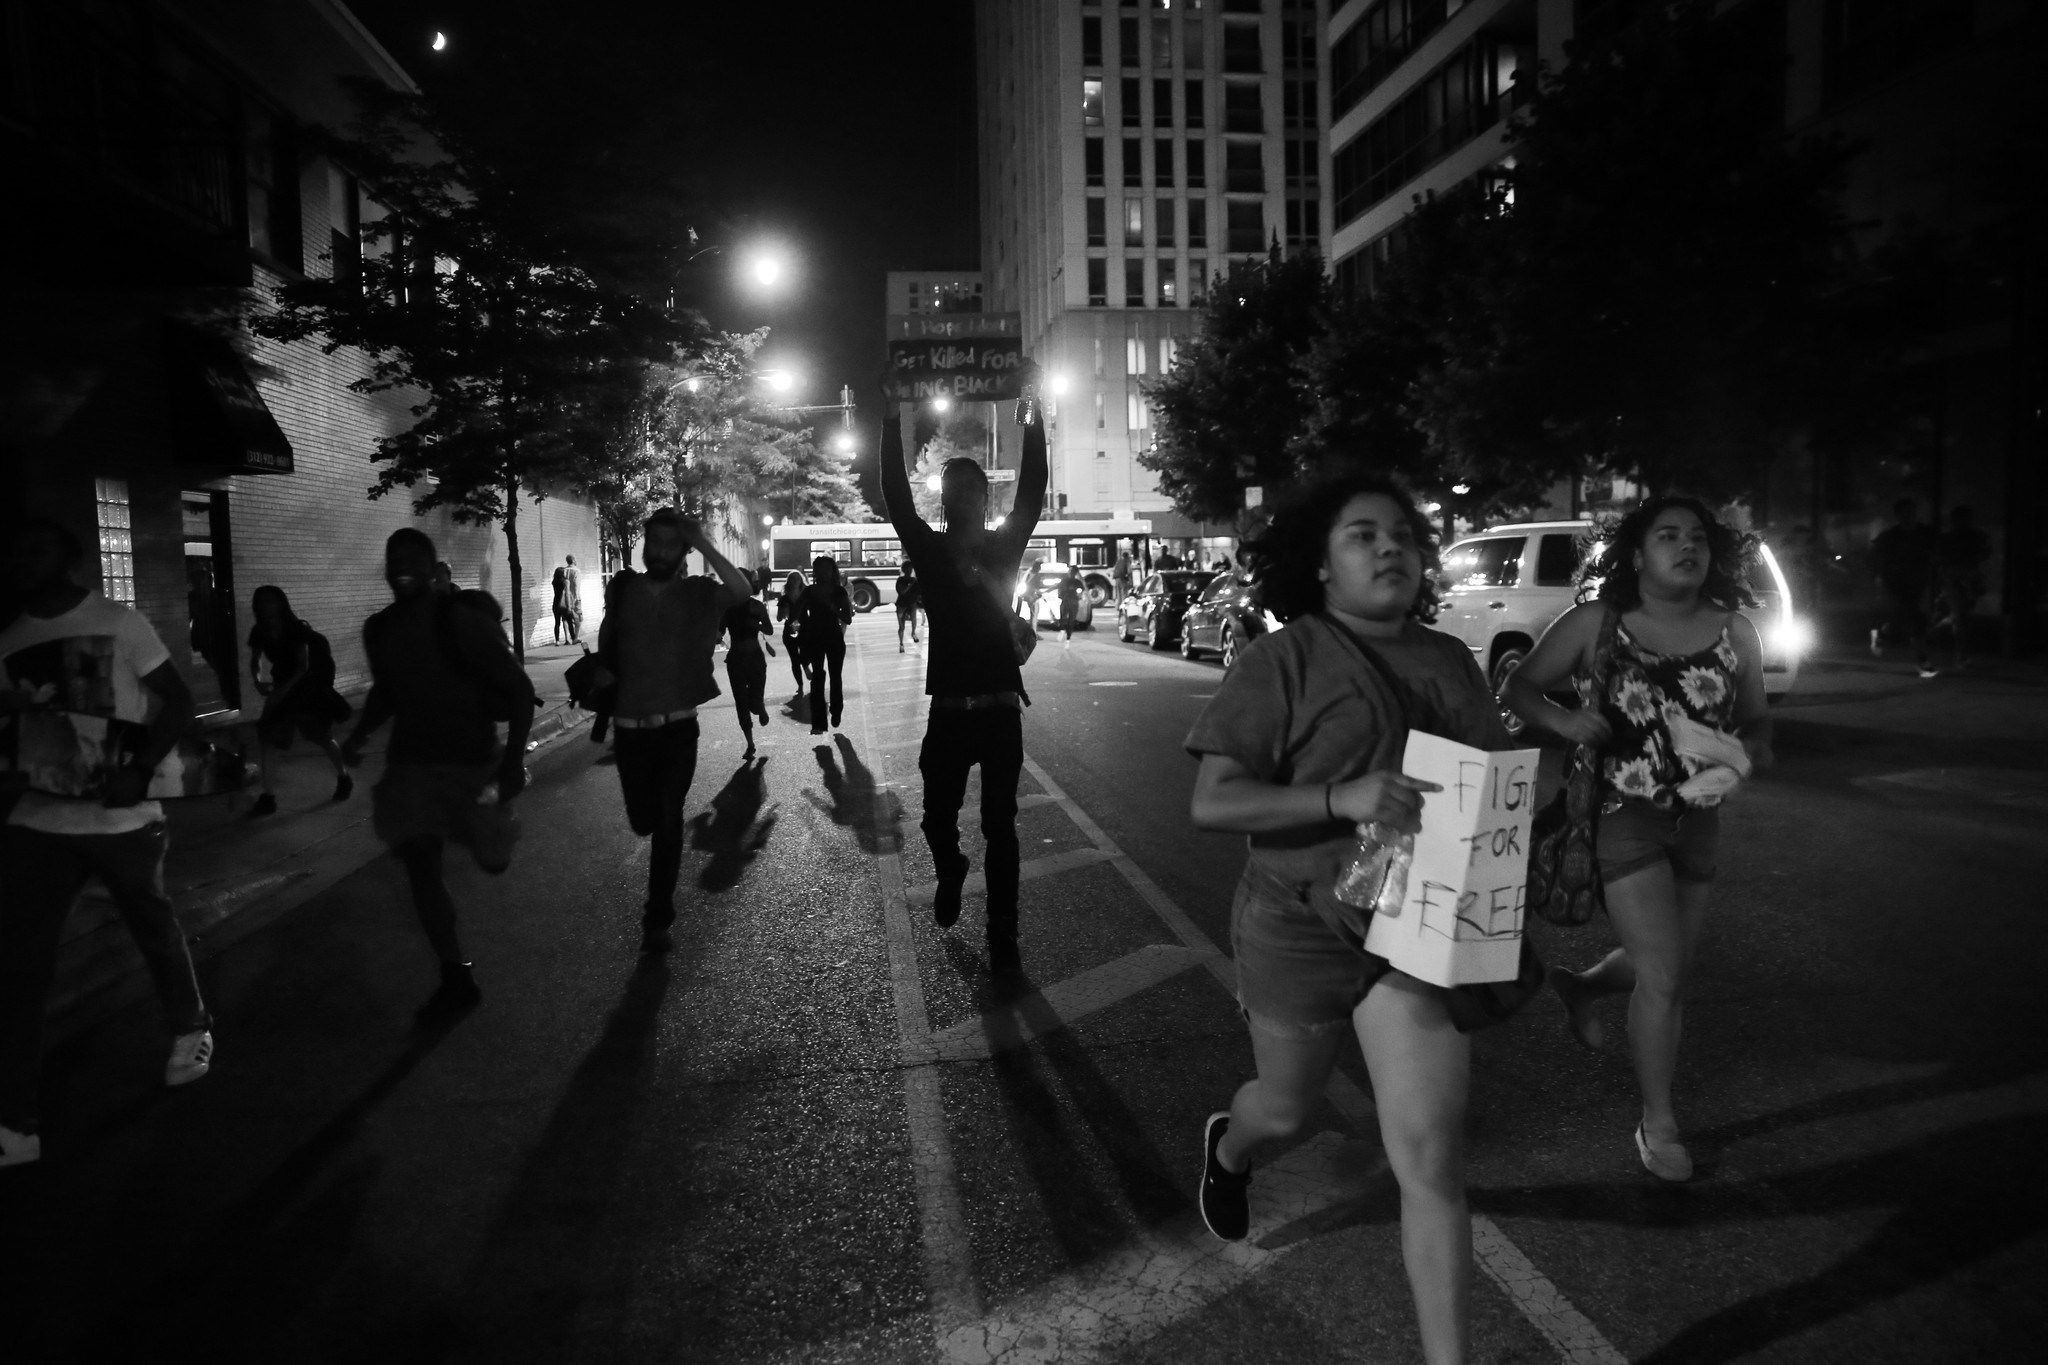 ct-chicago-police-protests-0710-20160709.jpg